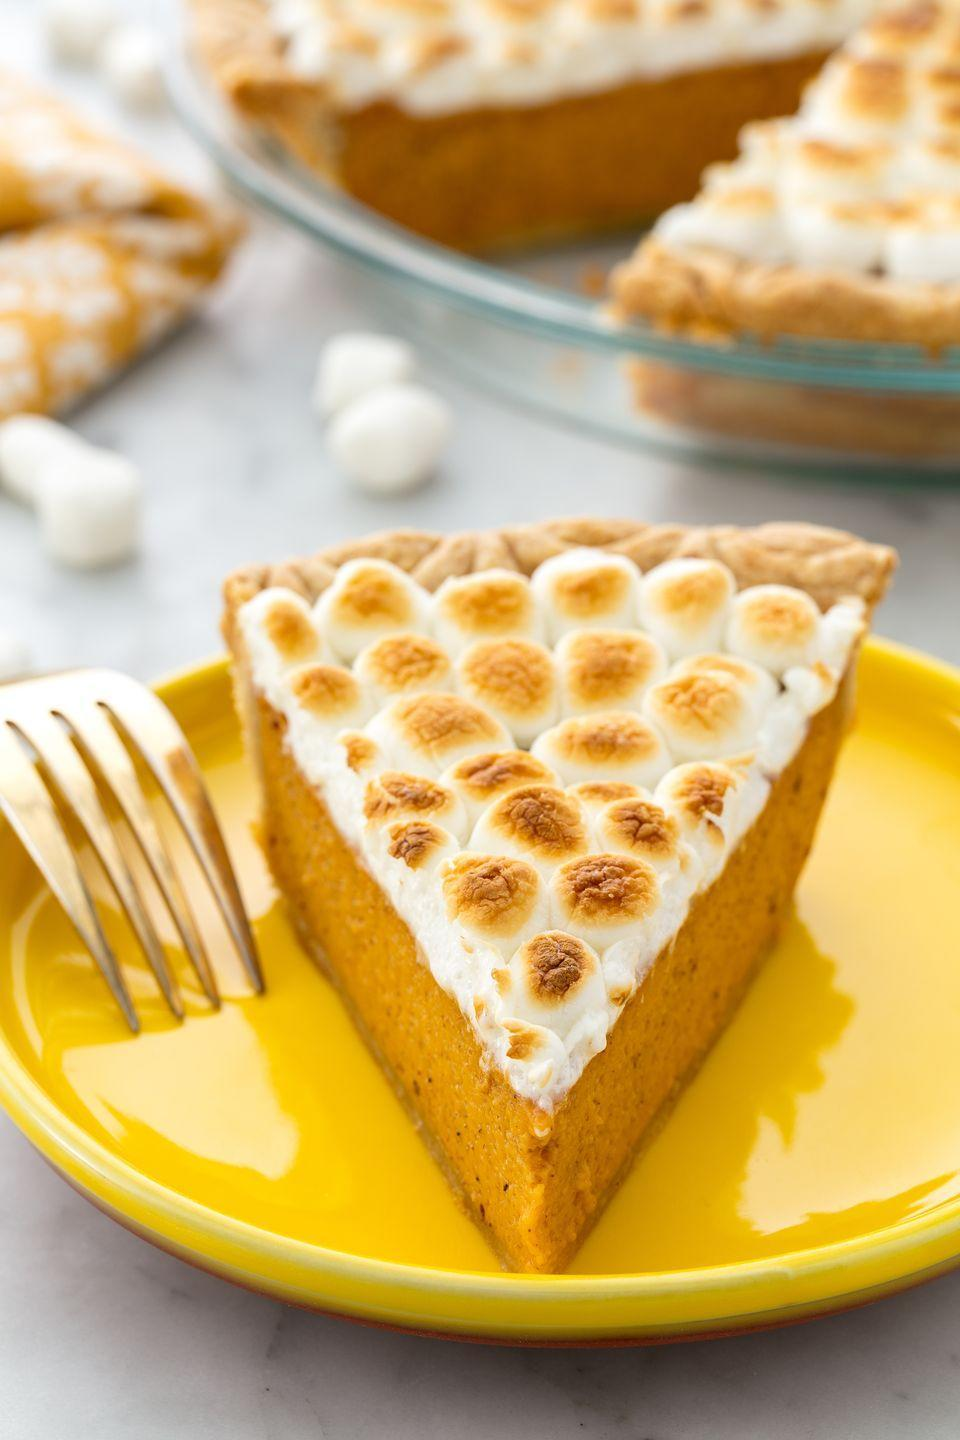 "<p>If you only make this southern treat on Thanksgiving, it's time to expand your horizons.</p><p>Get the recipe from <a href=""https://www.delish.com/cooking/recipe-ideas/recipes/a55690/best-sweet-potato-pie-recipe/"" rel=""nofollow noopener"" target=""_blank"" data-ylk=""slk:Delish"" class=""link rapid-noclick-resp"">Delish</a>.</p>"